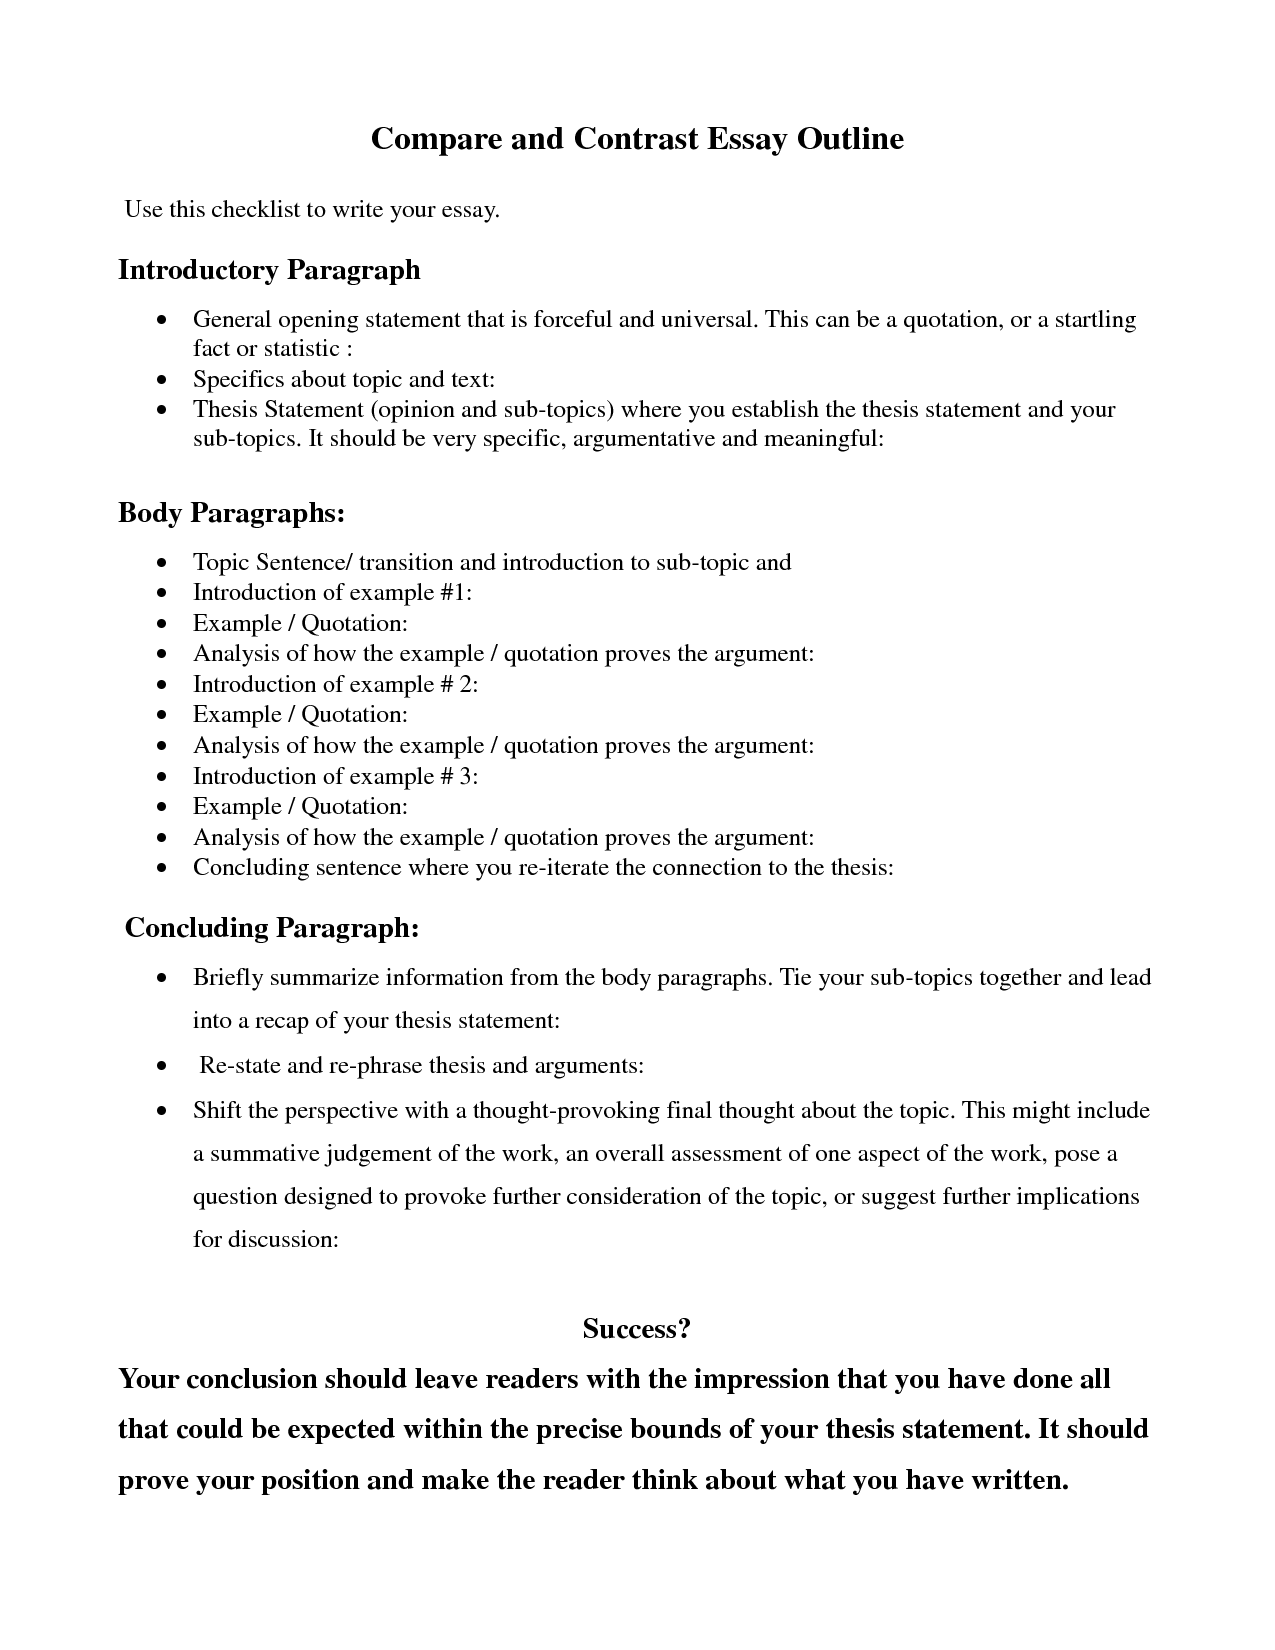 Compare And Contrast Essay Example For College Exle Of A Thesis Statement For An Argumentative Essay College